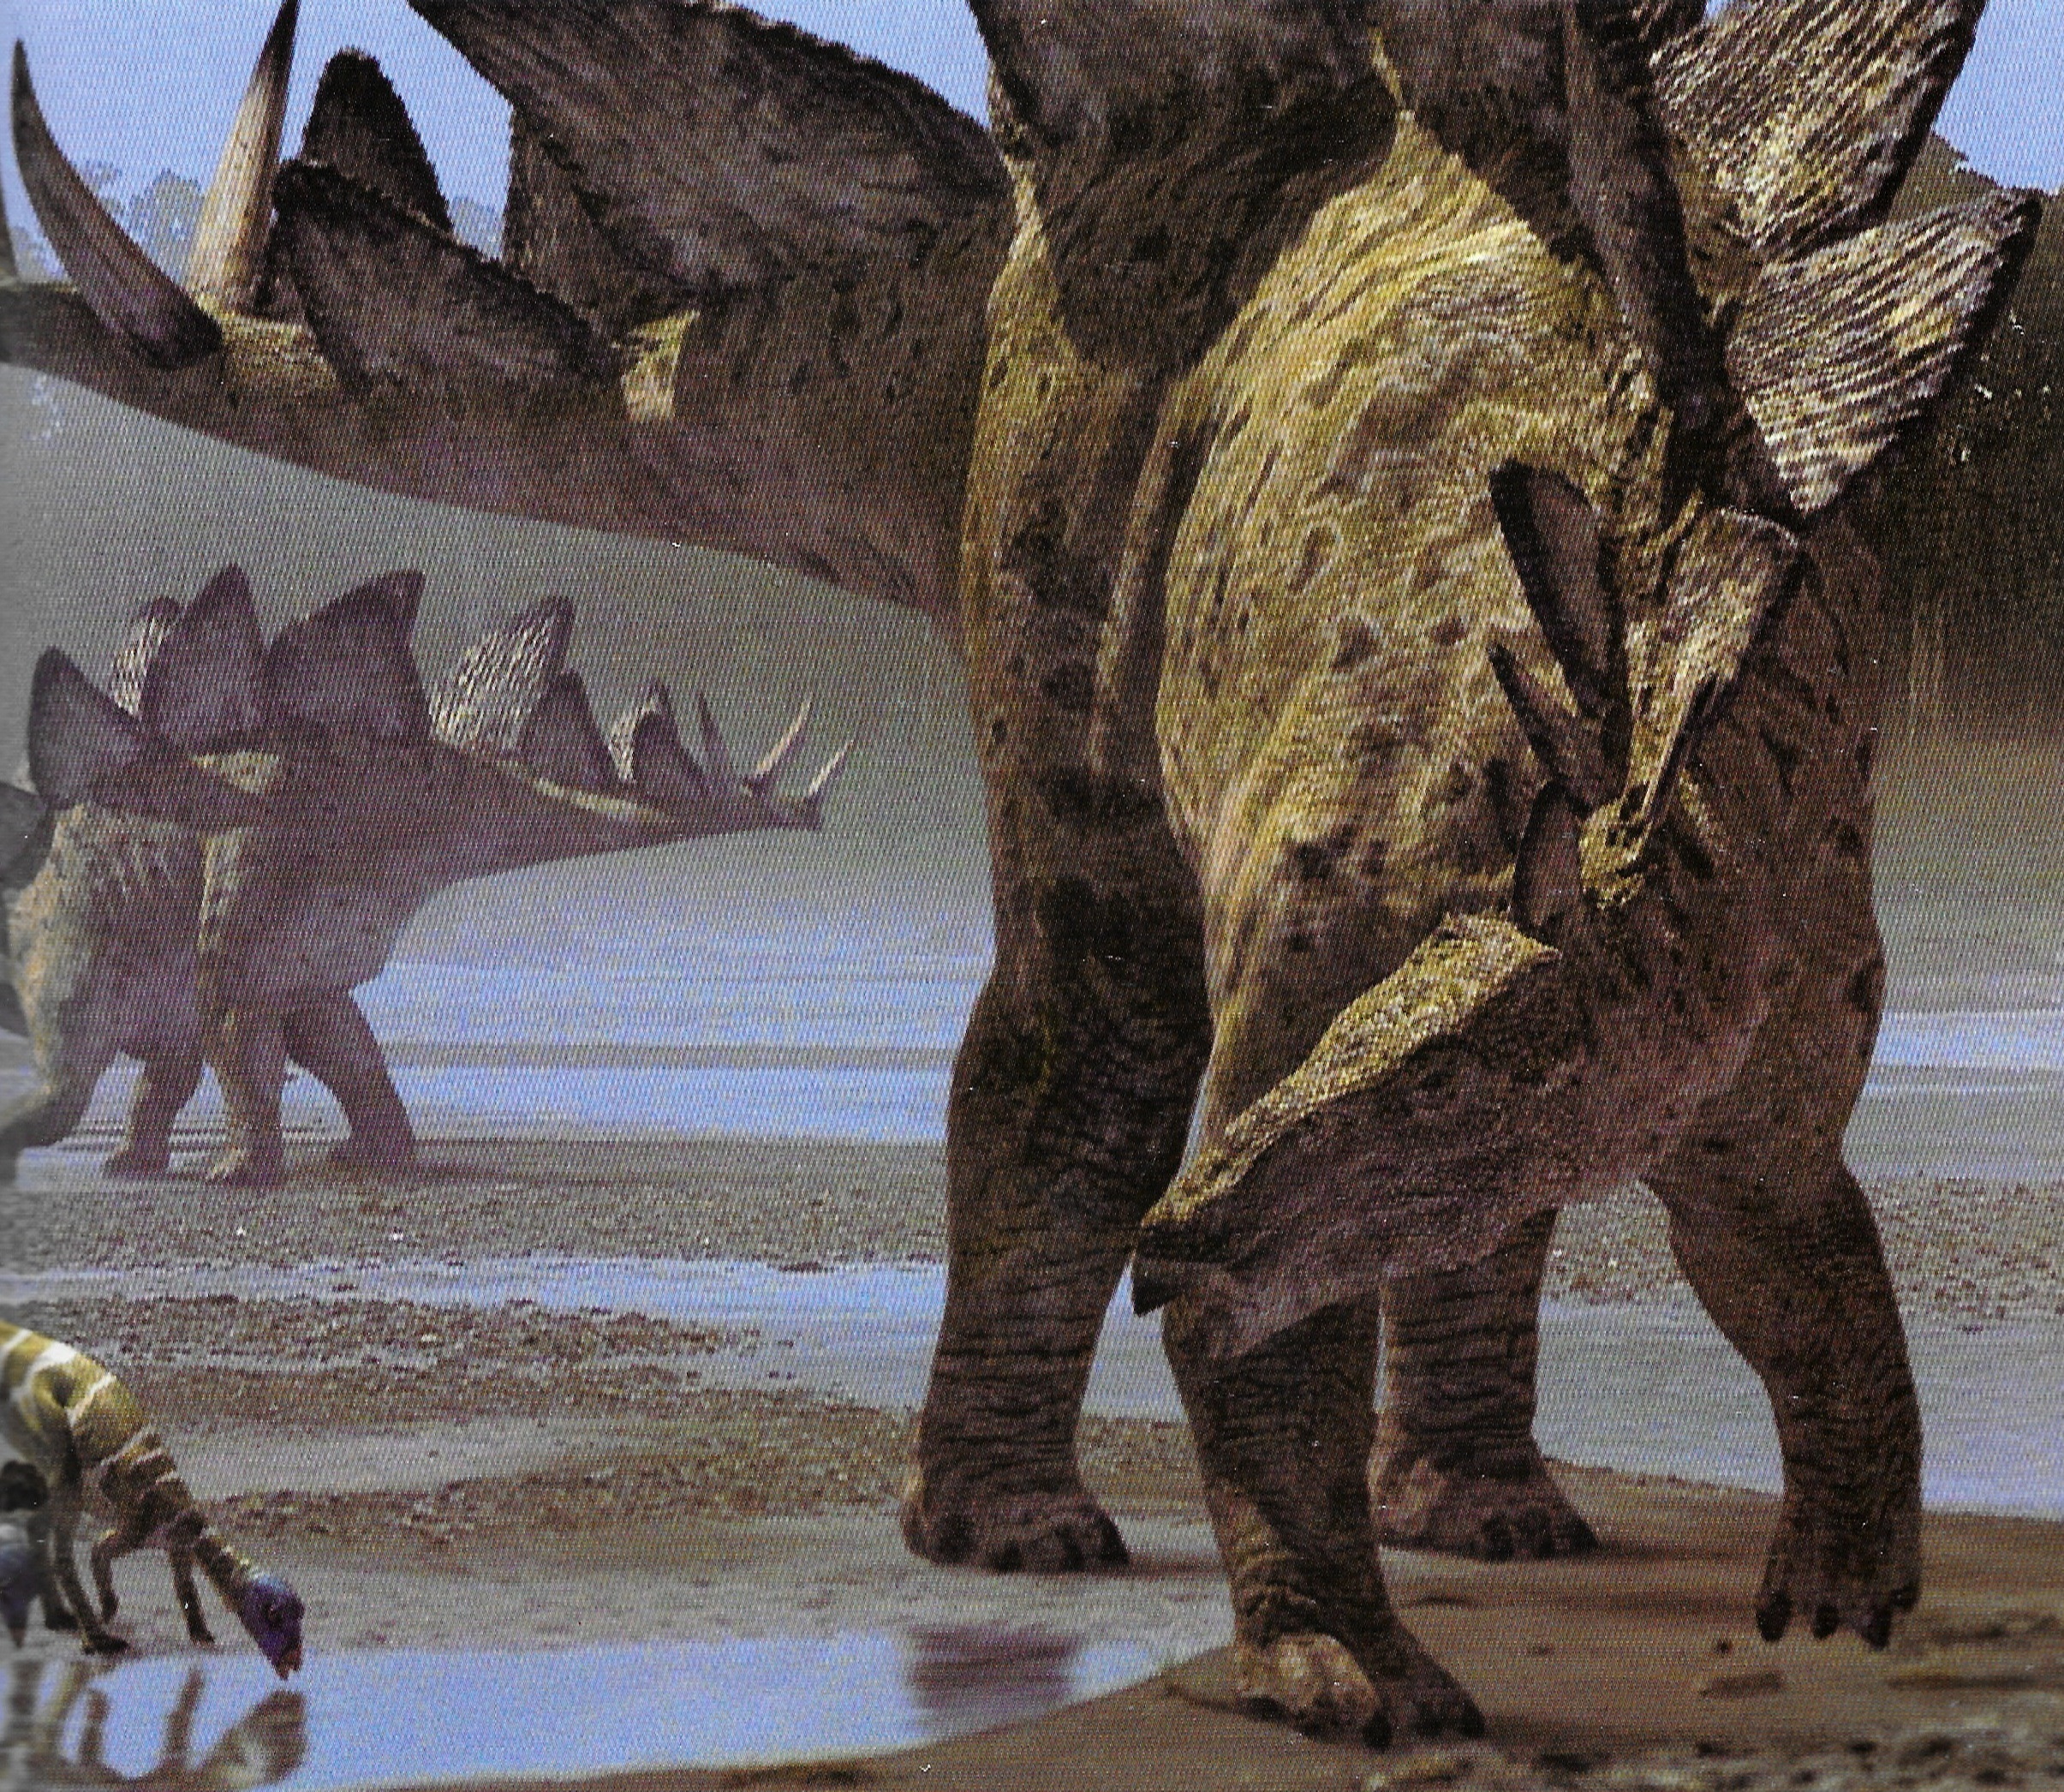 Stegosaurus walking with wikis the free walking with